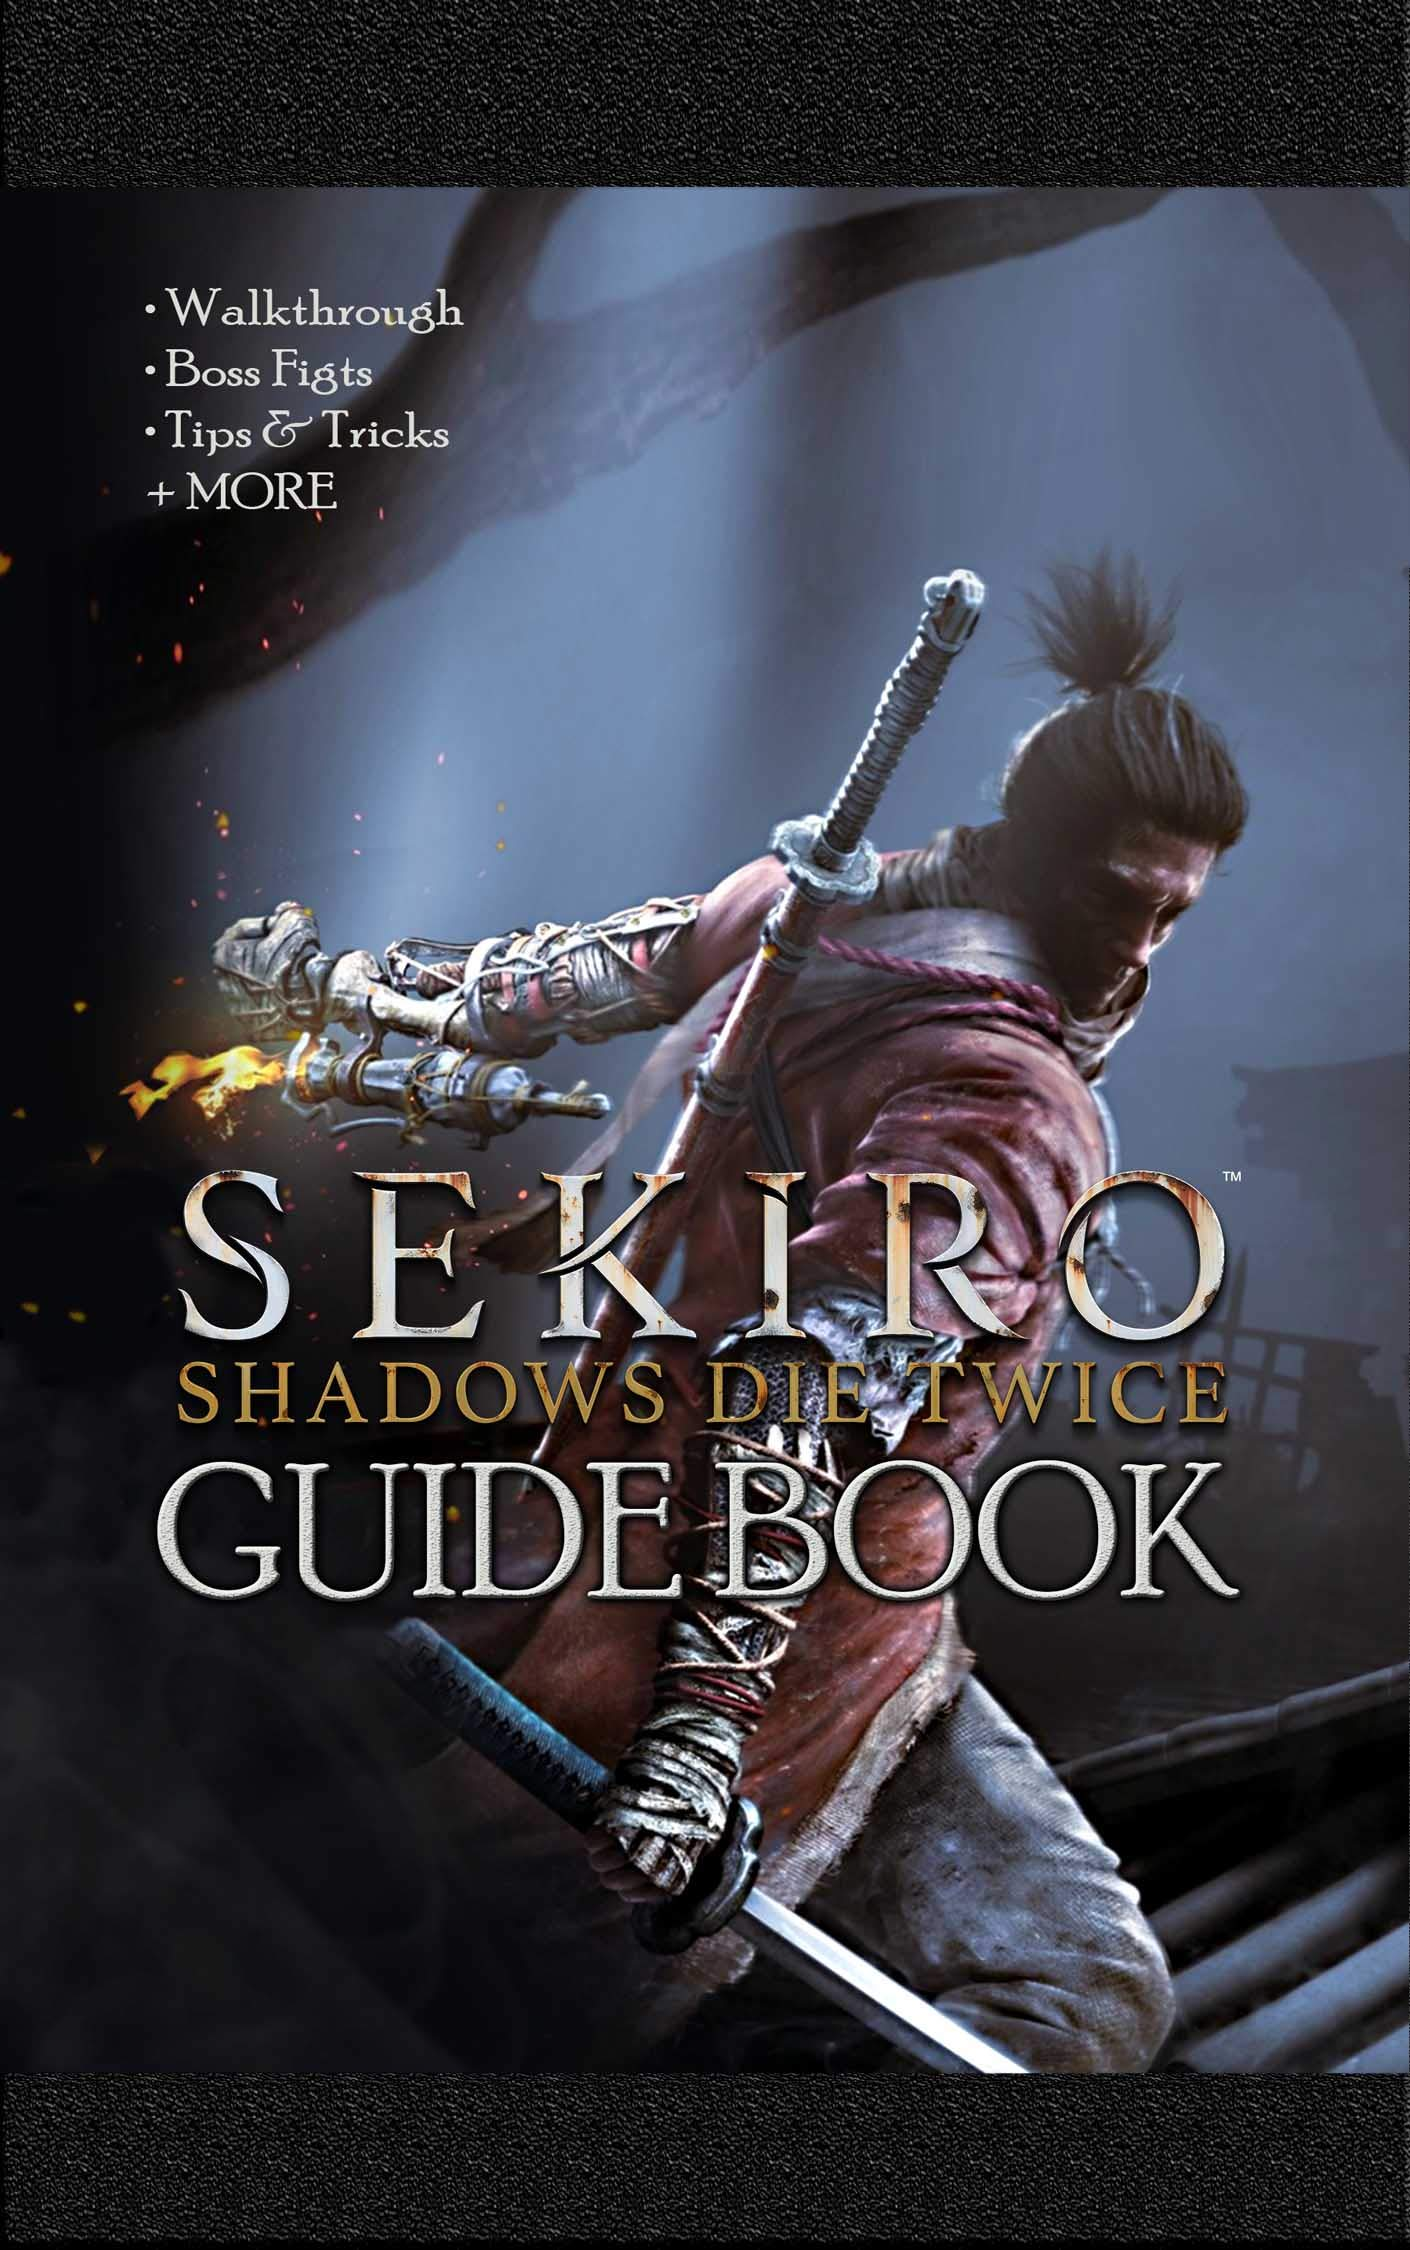 Sekiro Shadows Die Twice Guide Book: Walkthrough, Boss Fights, Tips & Tricks + MORE